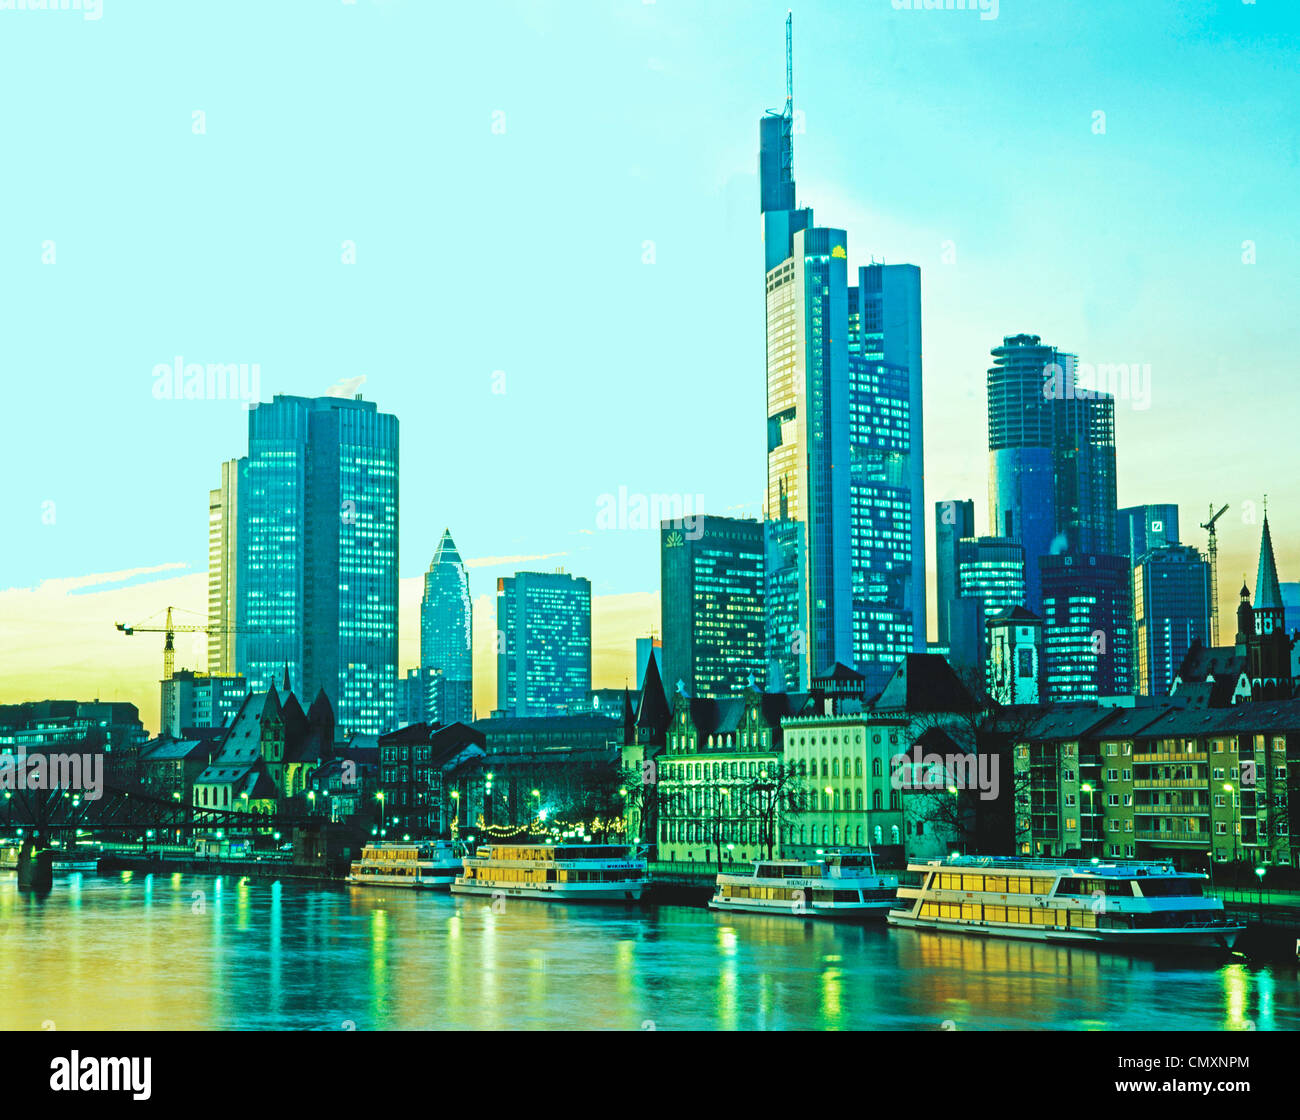 downtown, banking area, commerzbank - Stock Image